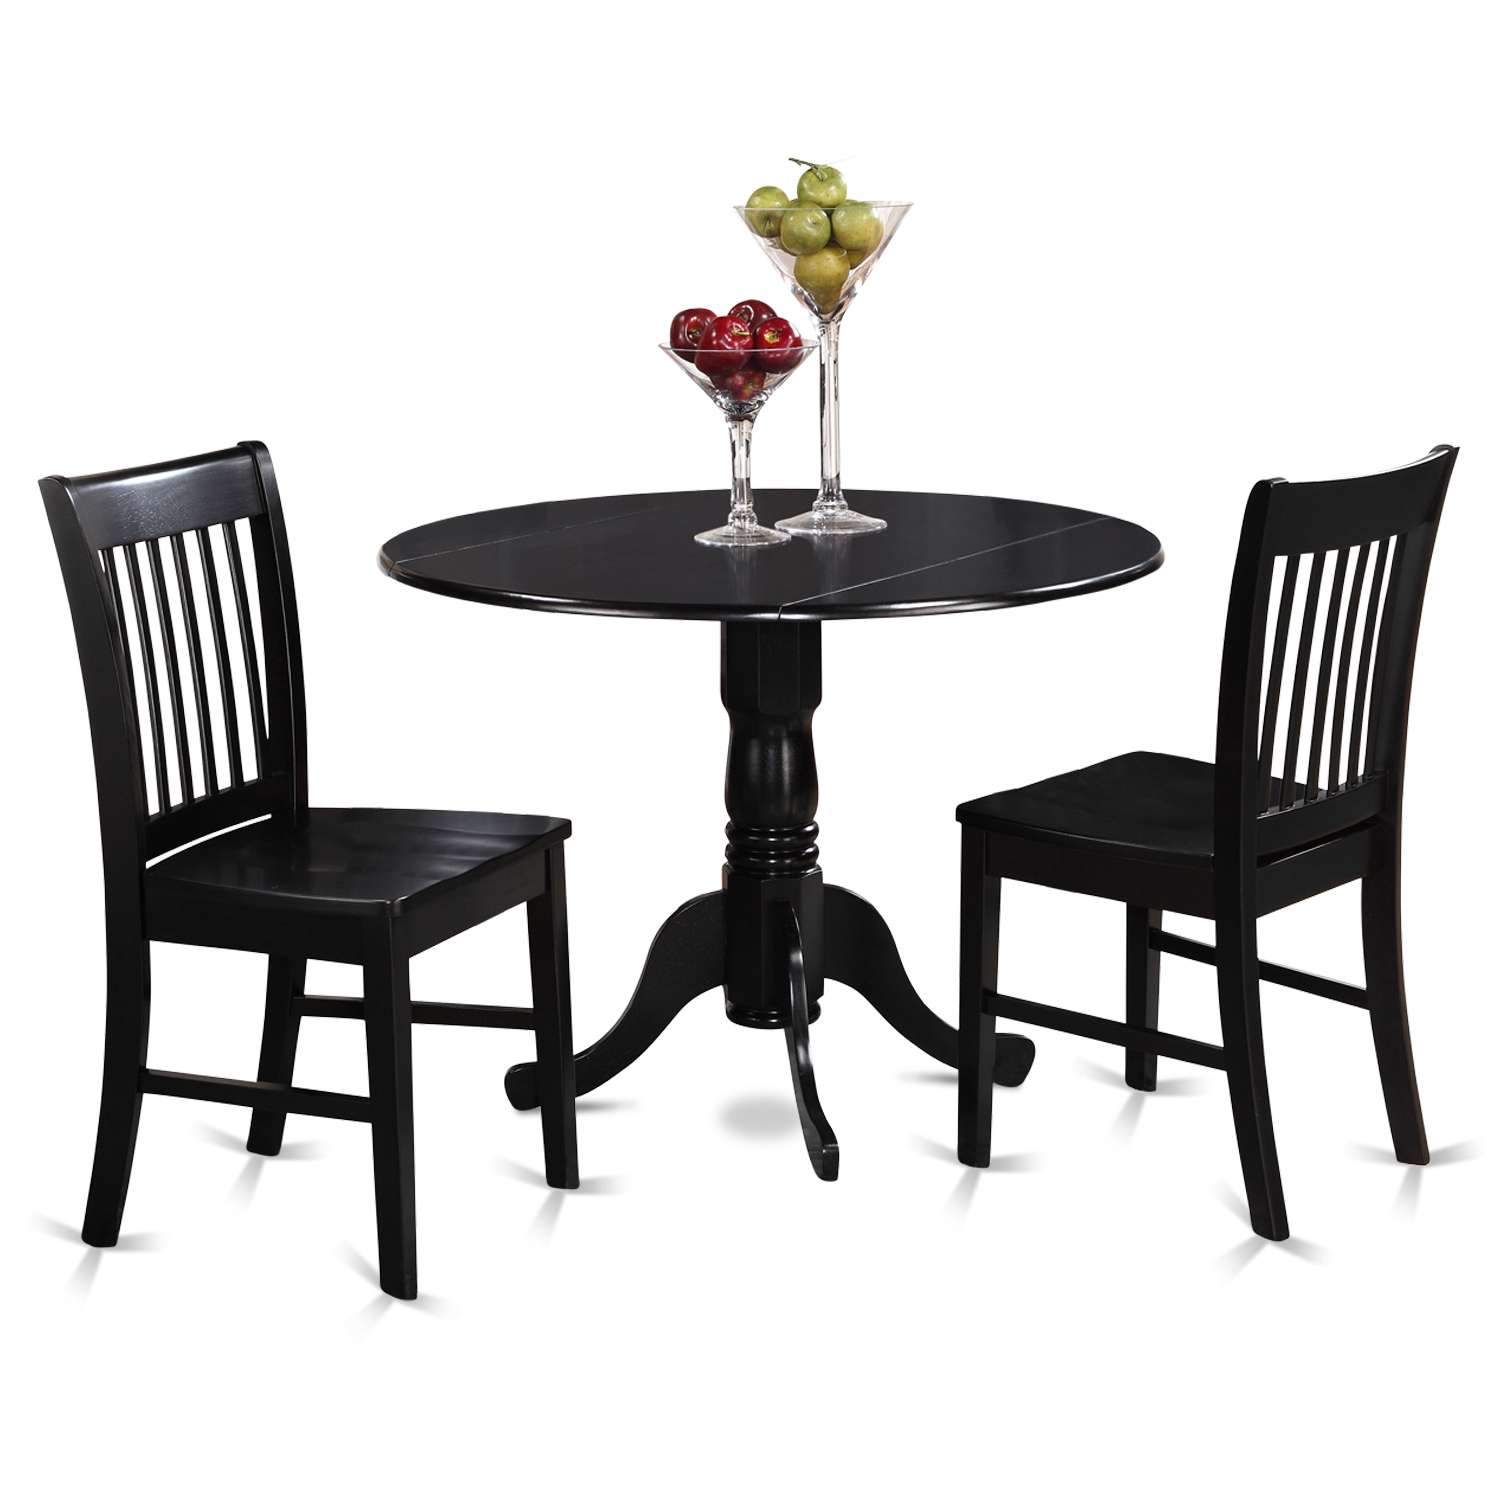 Admirable East West Furniture Dlno3 Blk W Caraccident5 Cool Chair Designs And Ideas Caraccident5Info